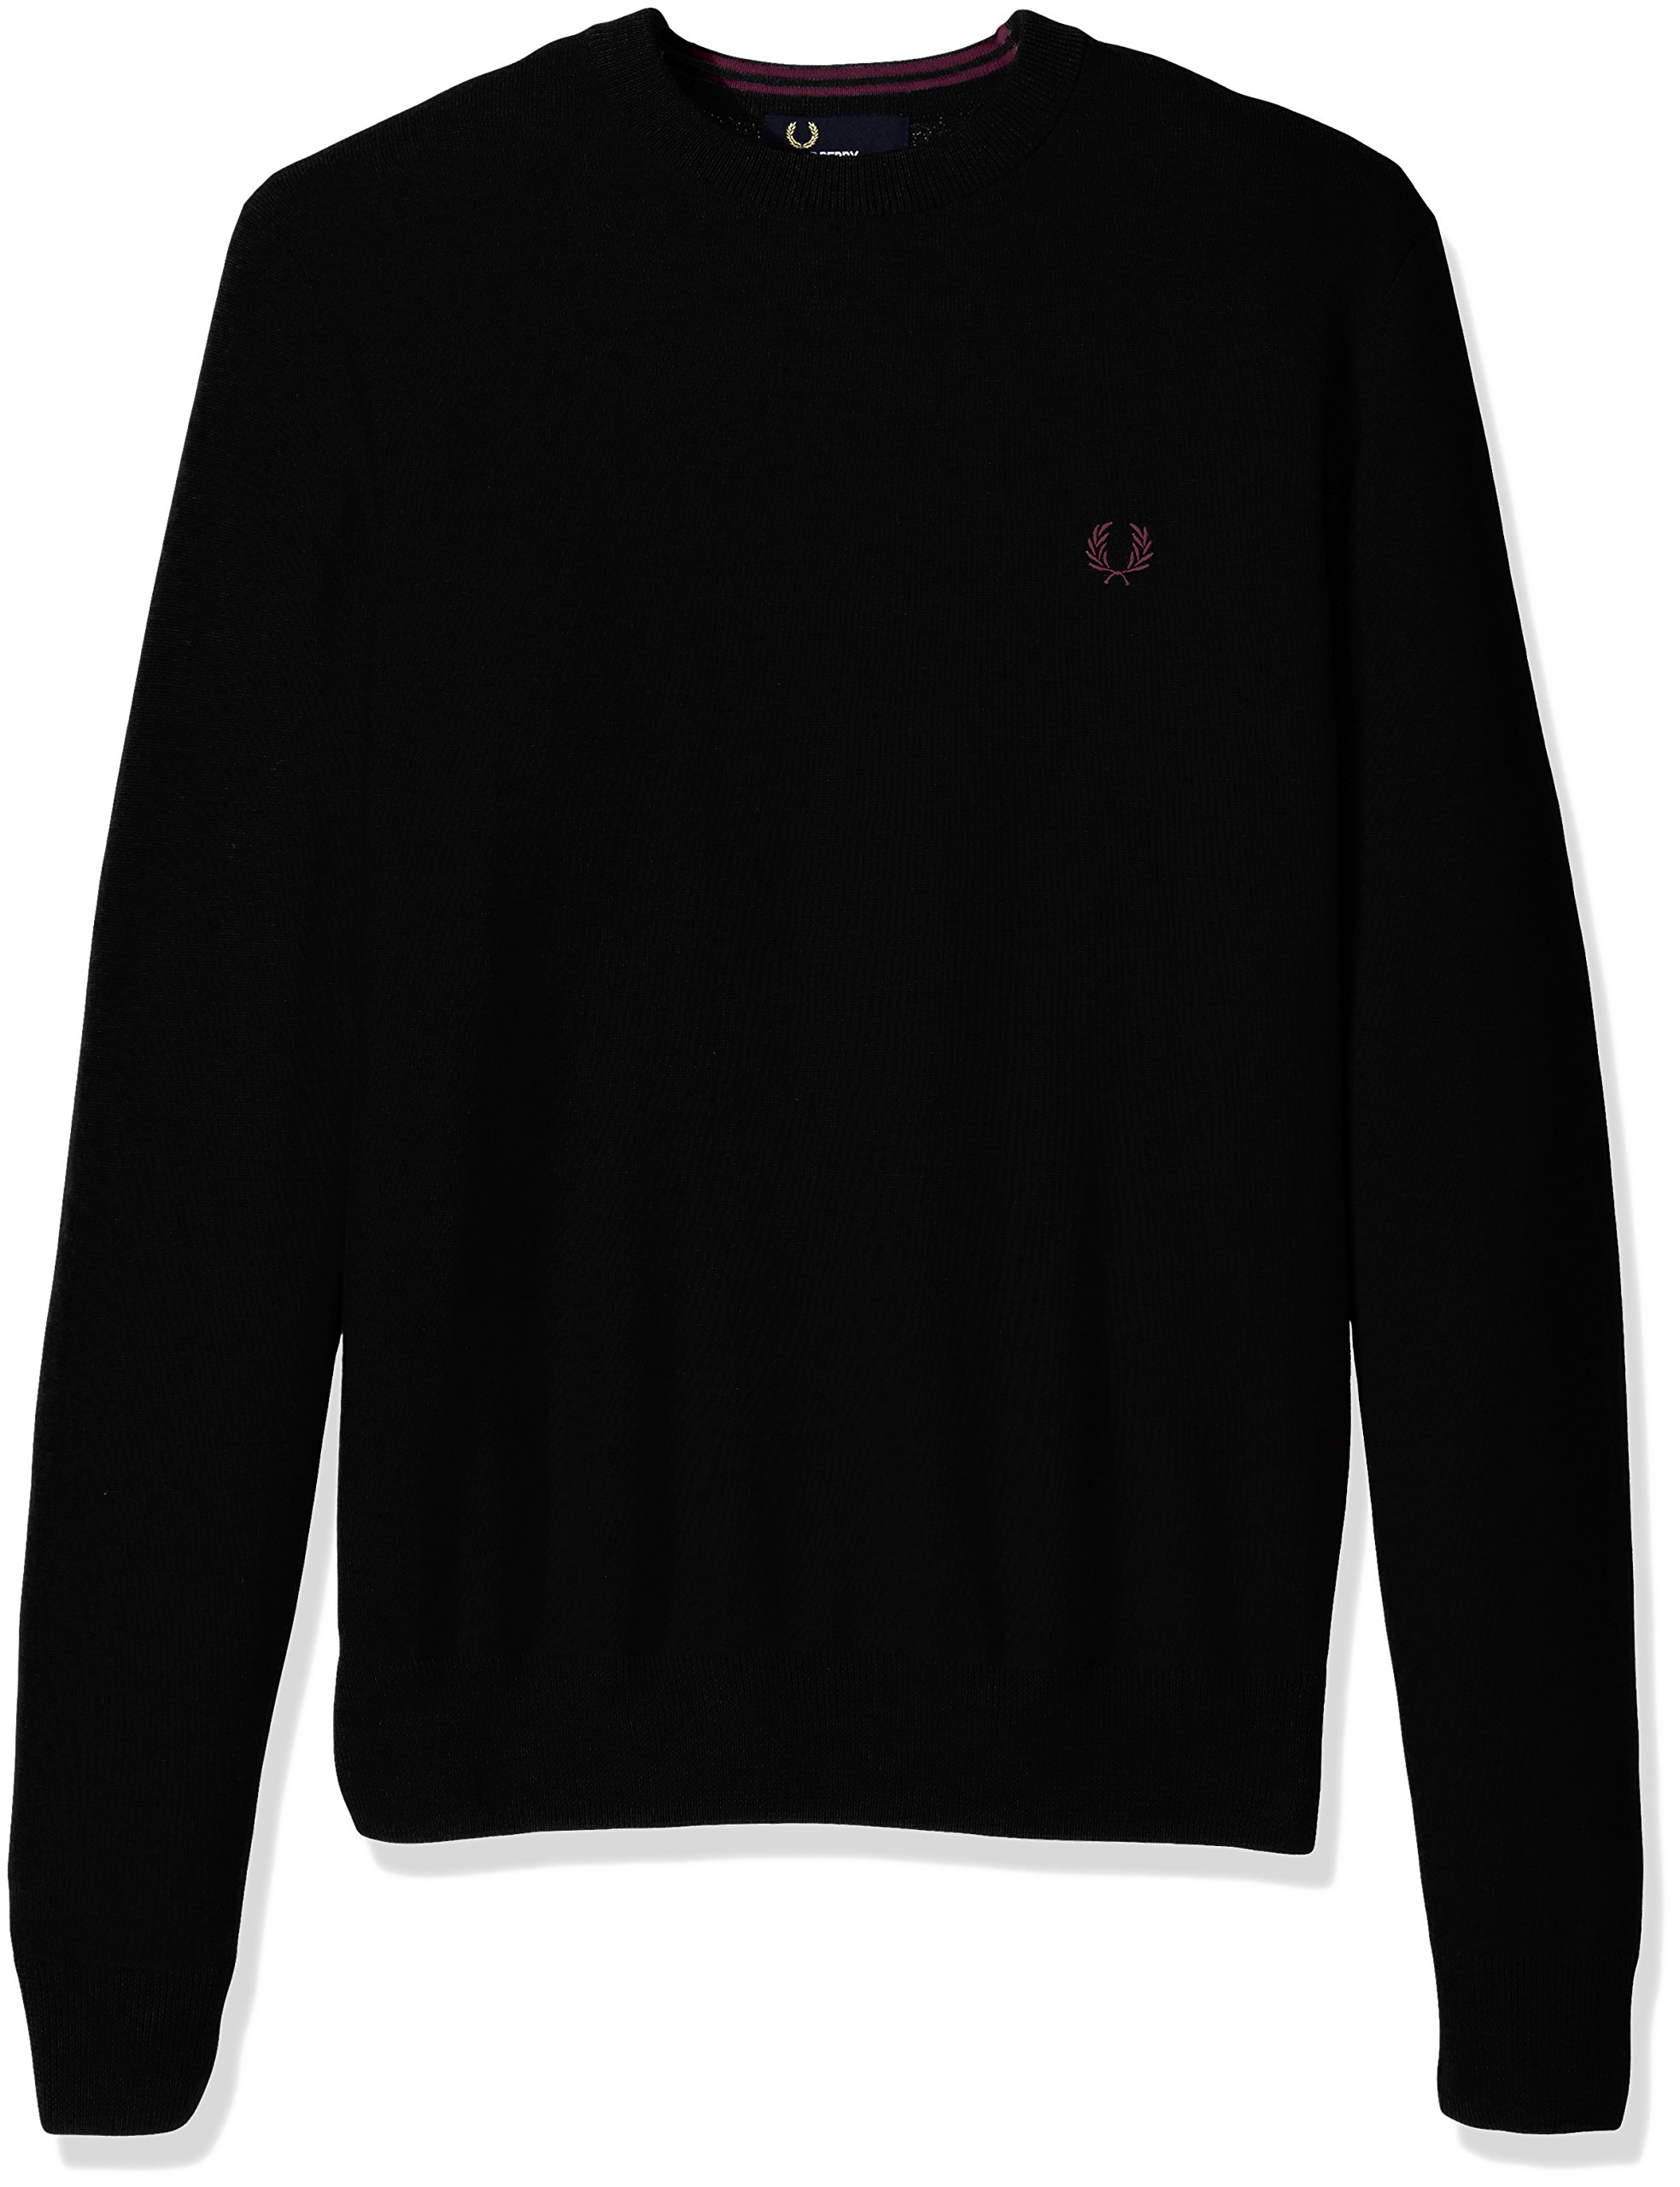 Fred Perry Men's Classic Crew Neck Cotton Sweater, Black, Large